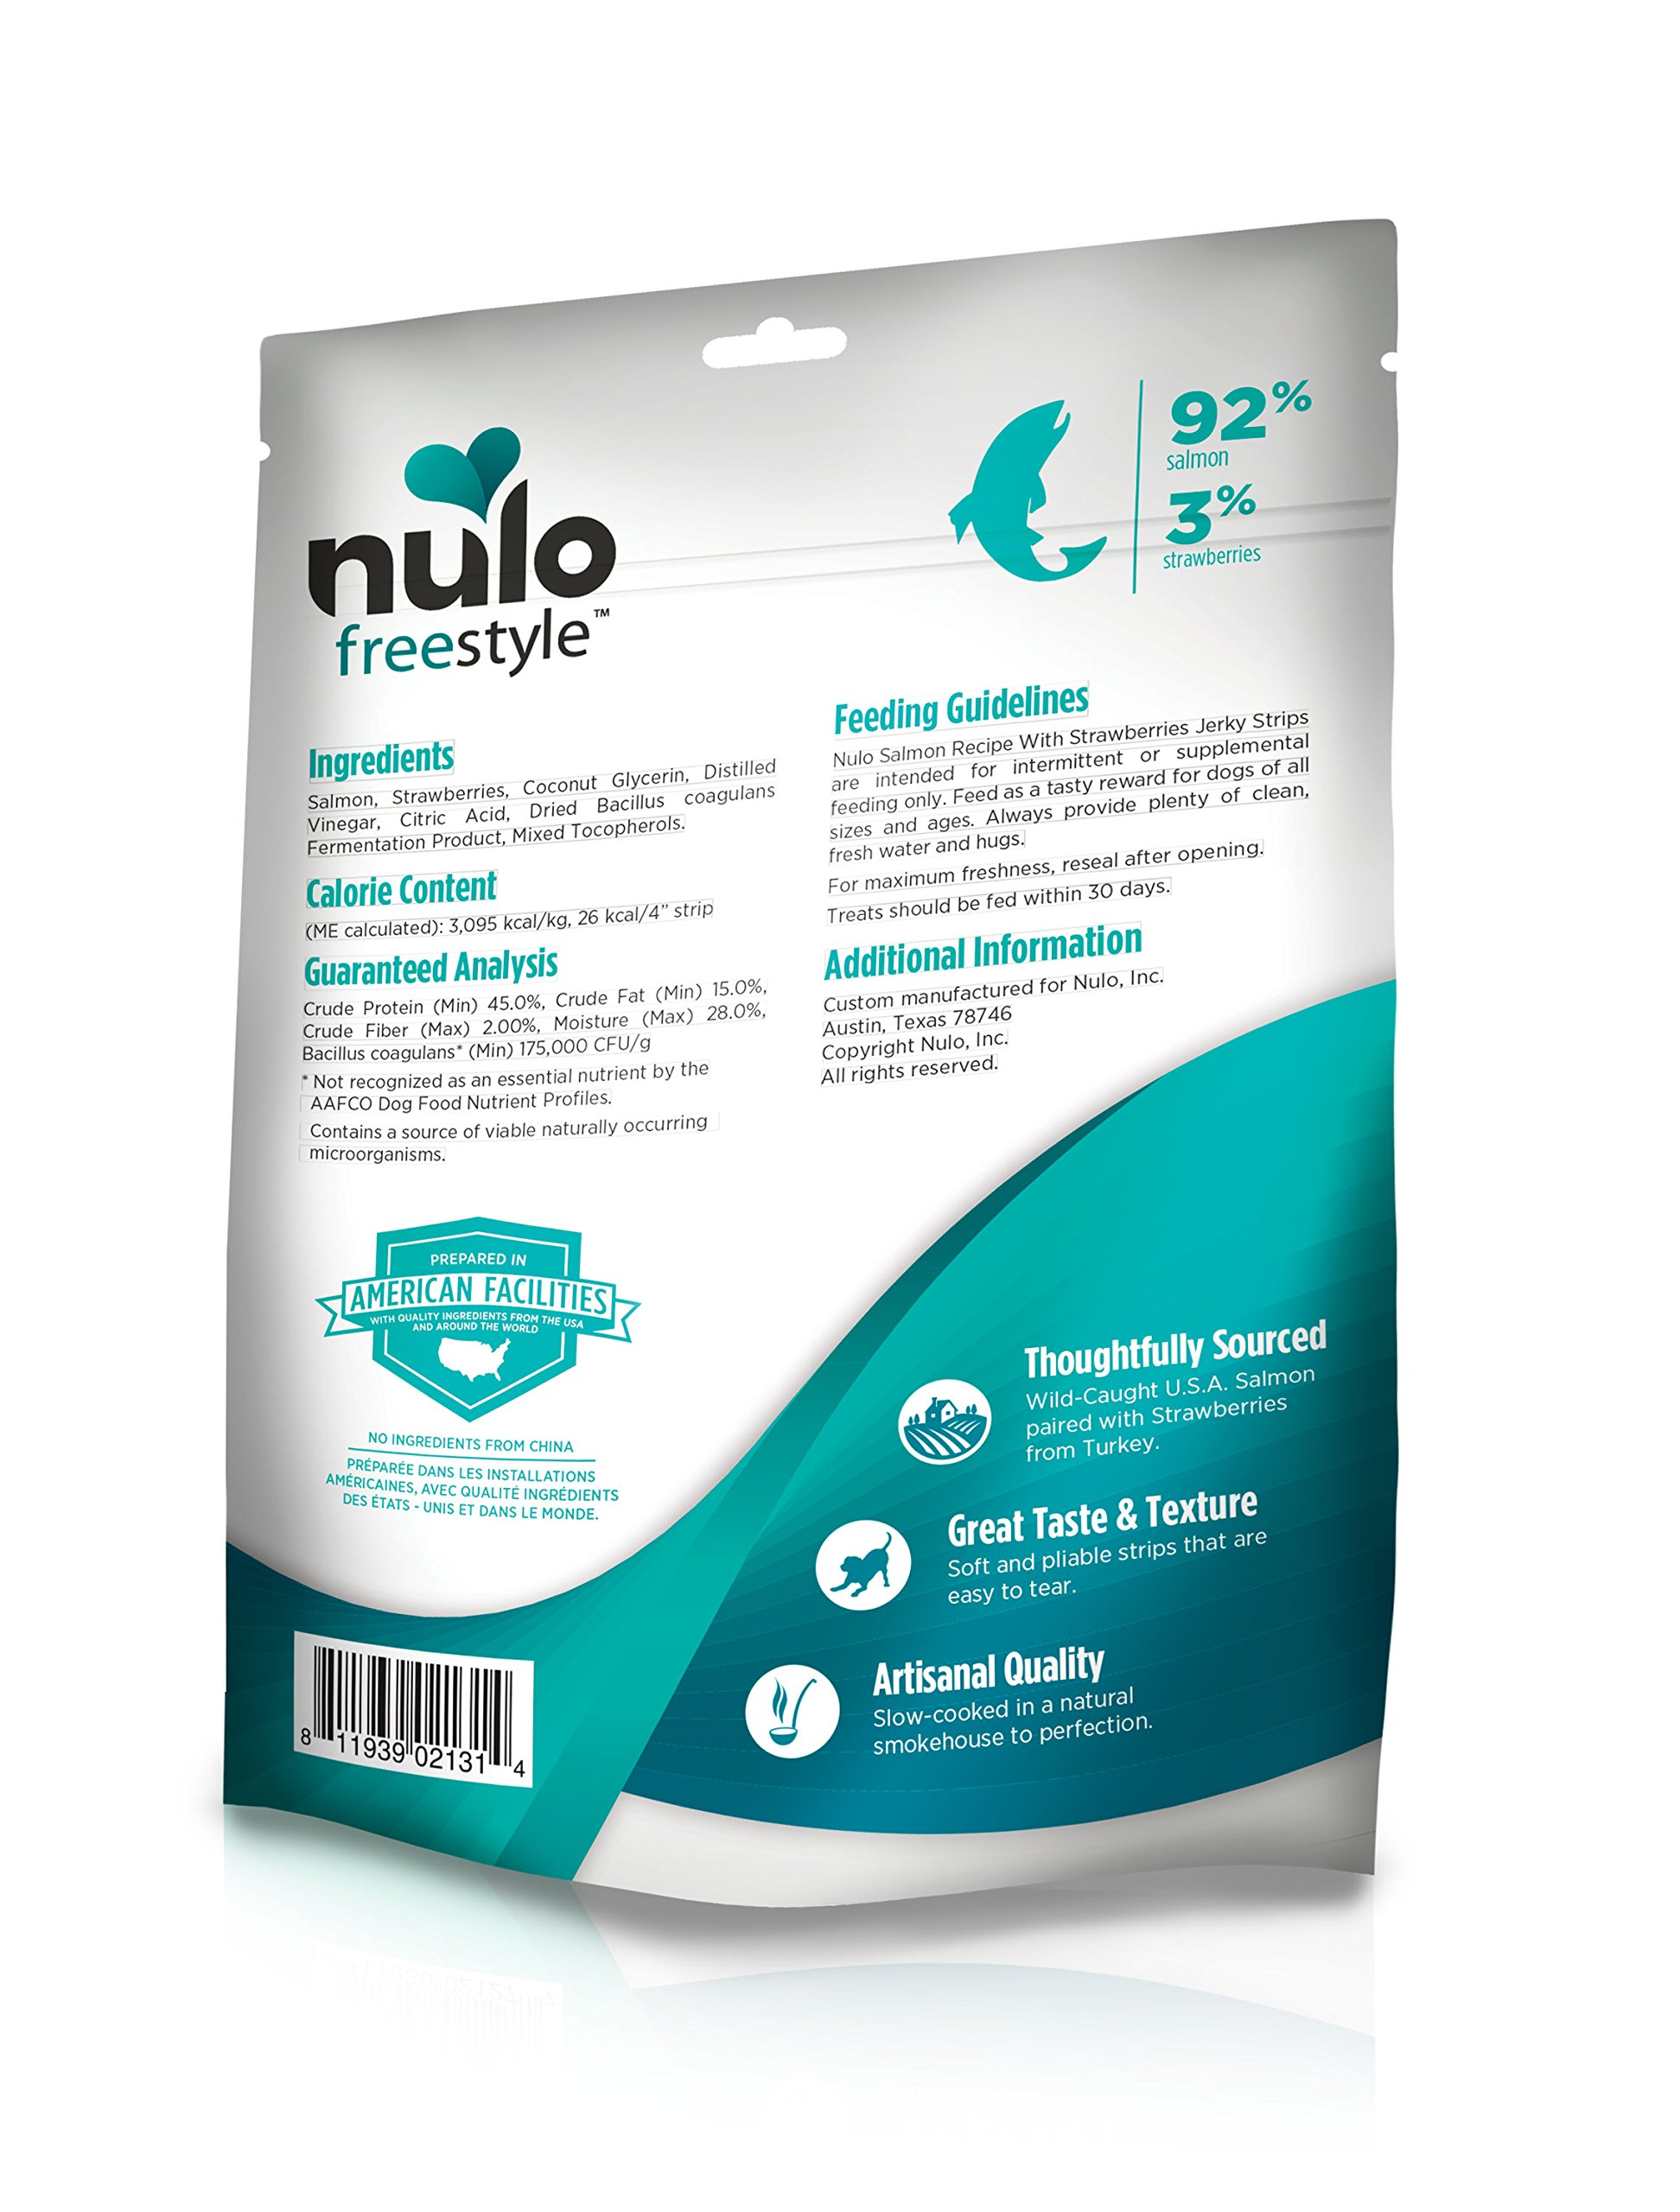 Nulo Freestyle Jerky Dog Treats: Healthy Grain Free Dog Treat - Natural Dog Treats for Training or Reward - Real Meat Jerky Strips for Puppy and Adult Dogs - Salmon with Strawberries Recipe - 5 oz Bag by Nulo (Image #2)